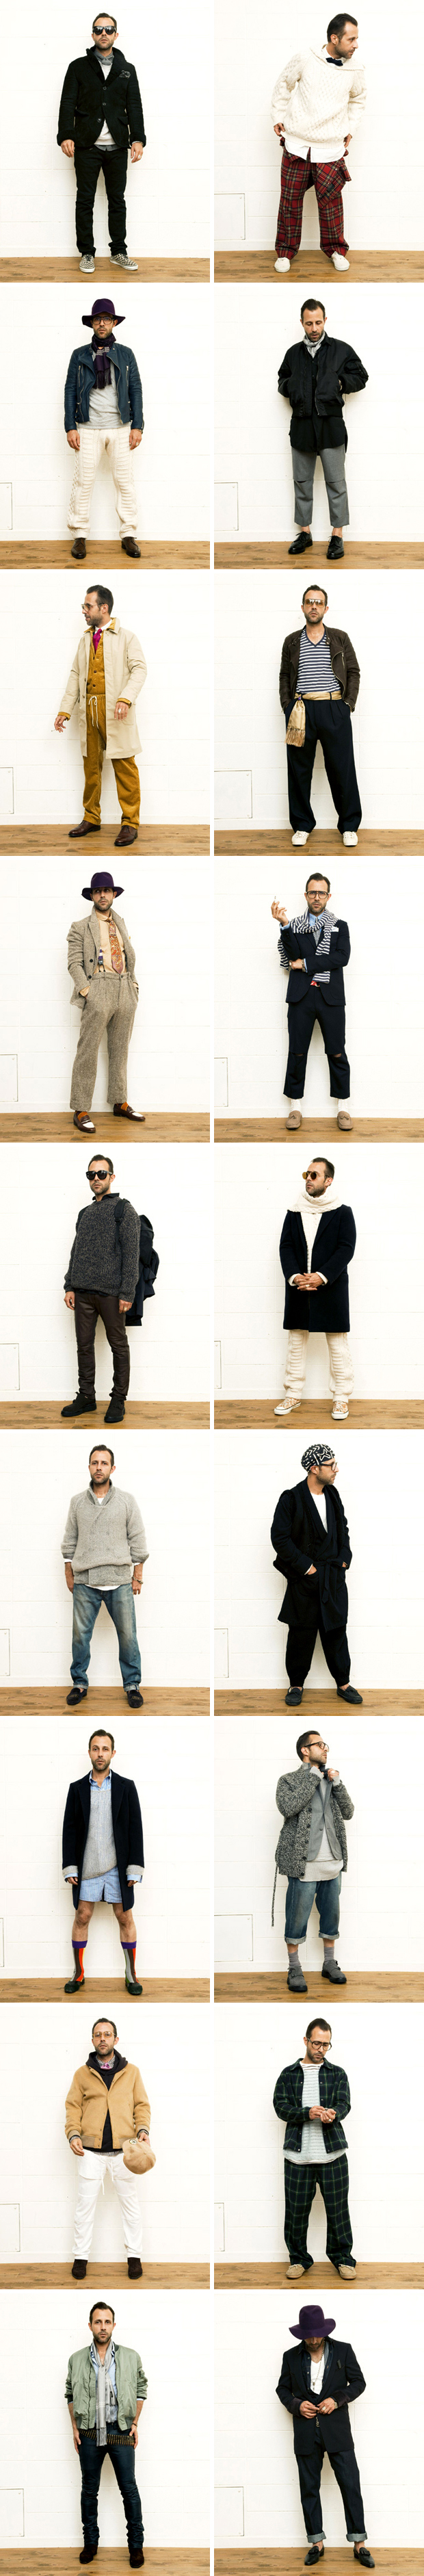 unused 2011 fallwinter collection